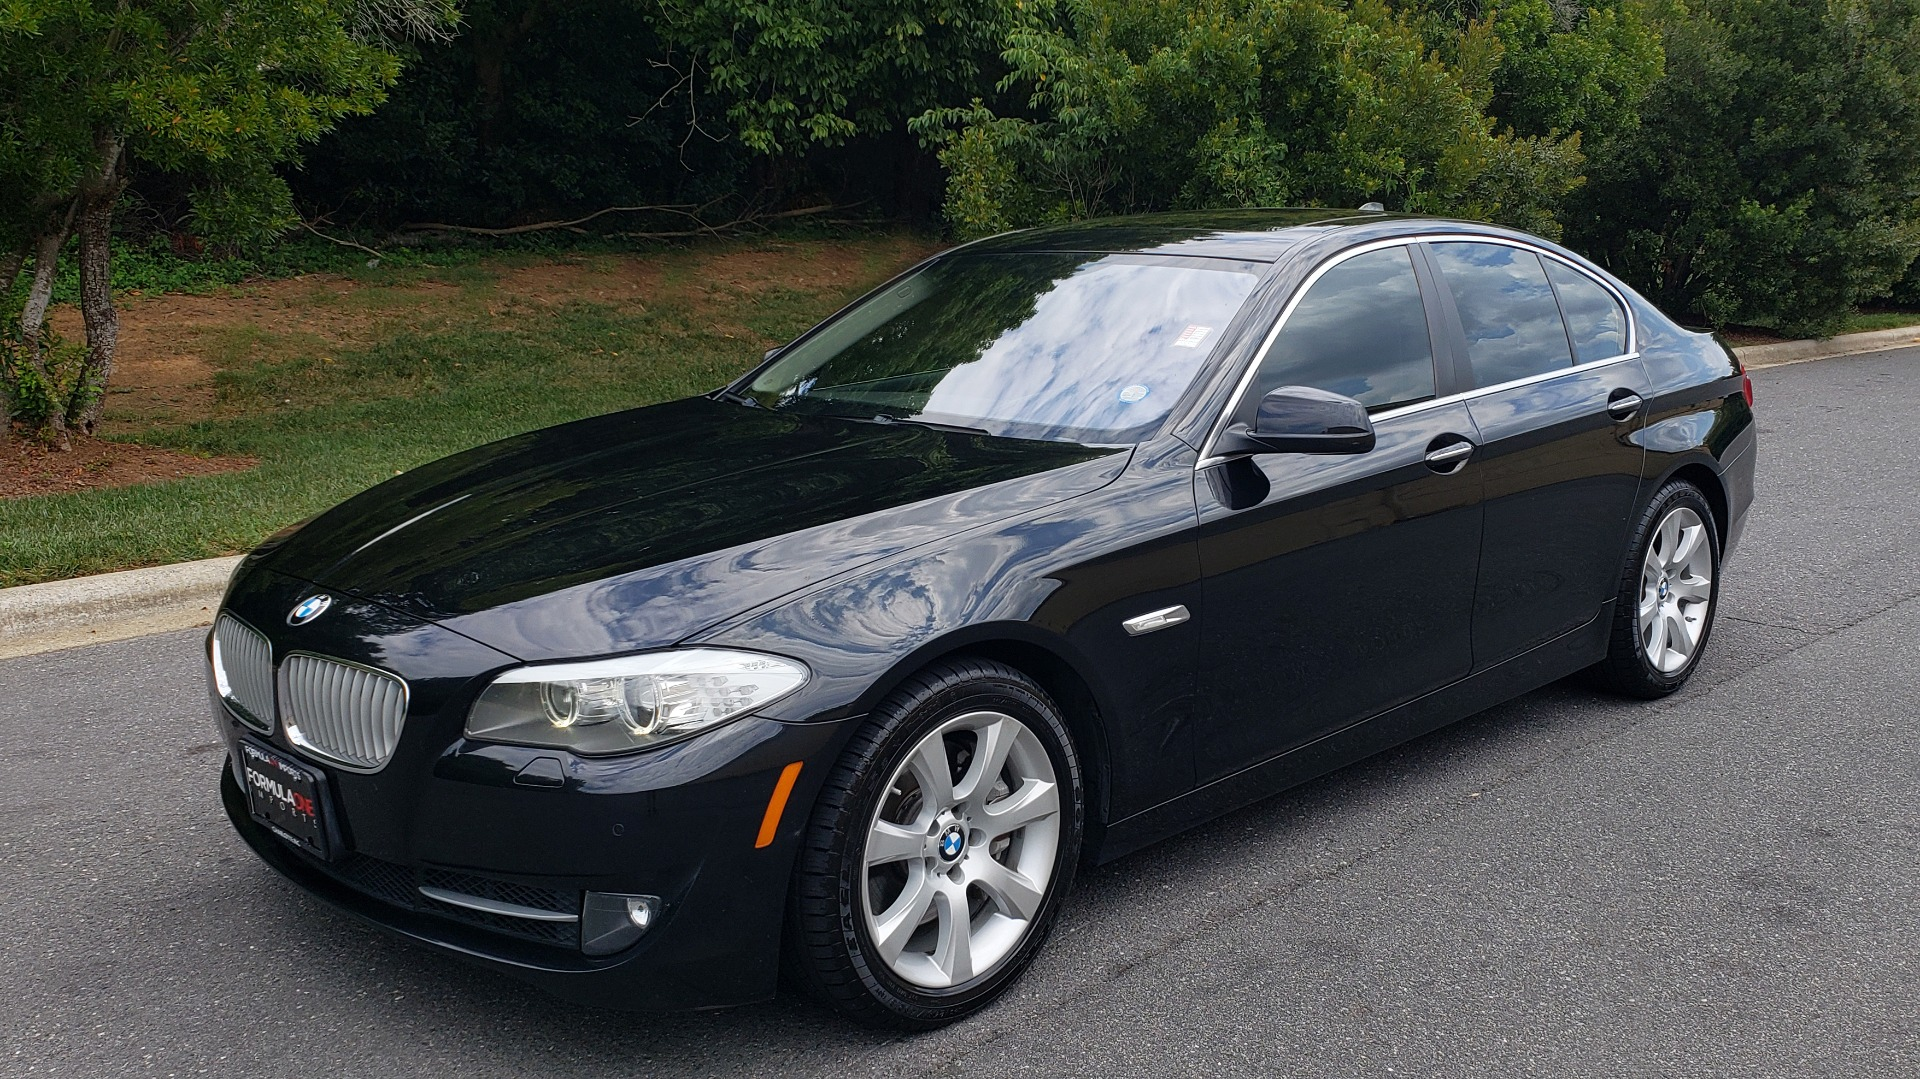 Used 2013 BMW 5 SERIES 550I XDRIVE LUX PKG / EXEC / COLD WTHR / NAV / SUNROOF / REARVIEW for sale $17,995 at Formula Imports in Charlotte NC 28227 1